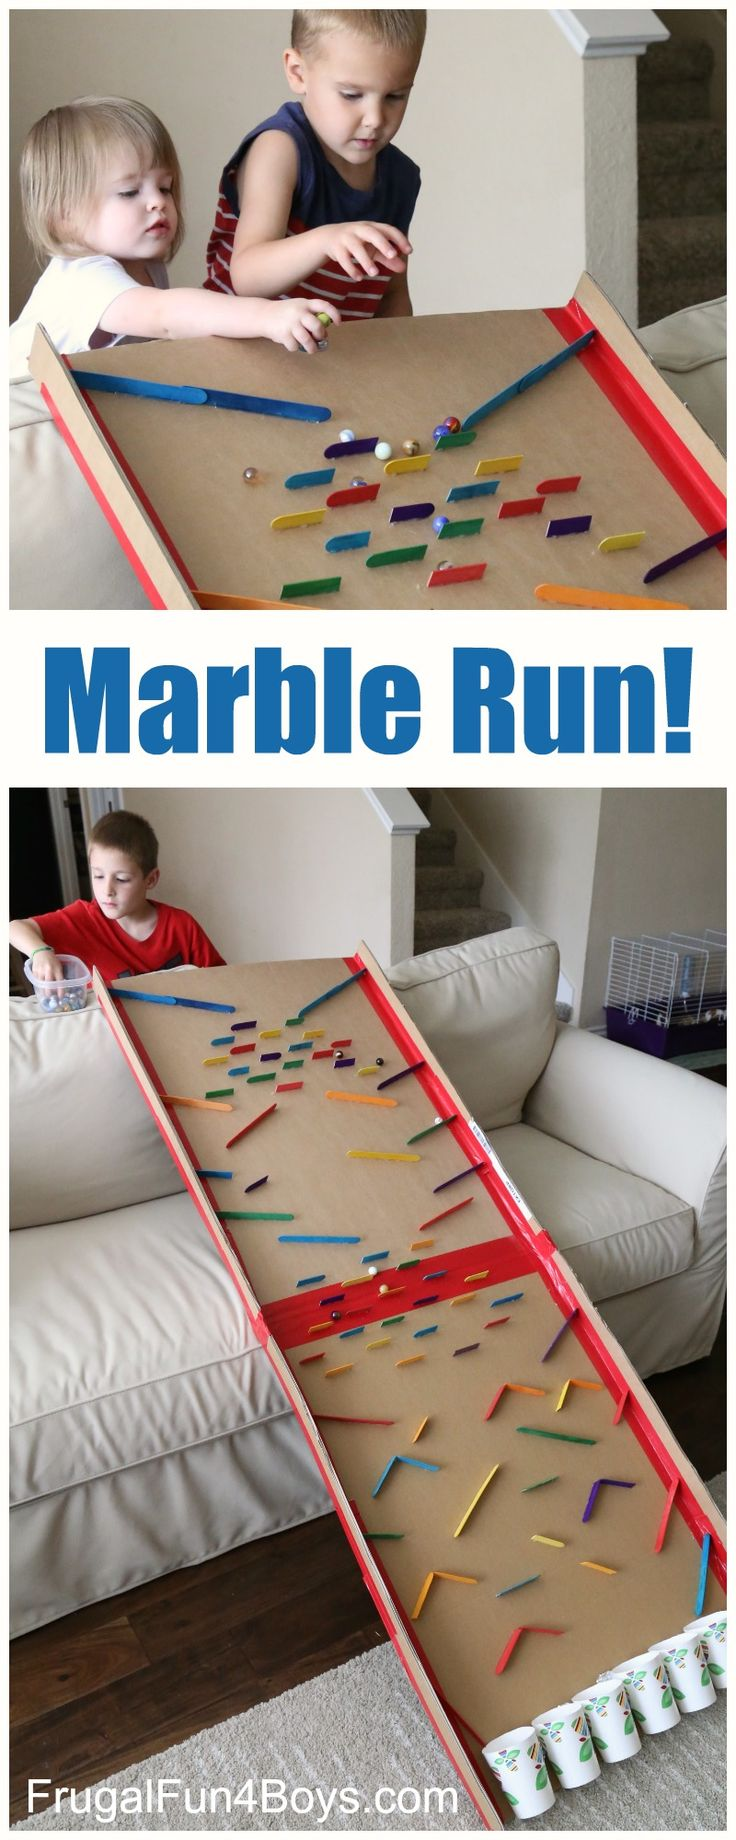 Turn a Cardboard Box into an Epic Marble Run - Frugal Fun For Boys